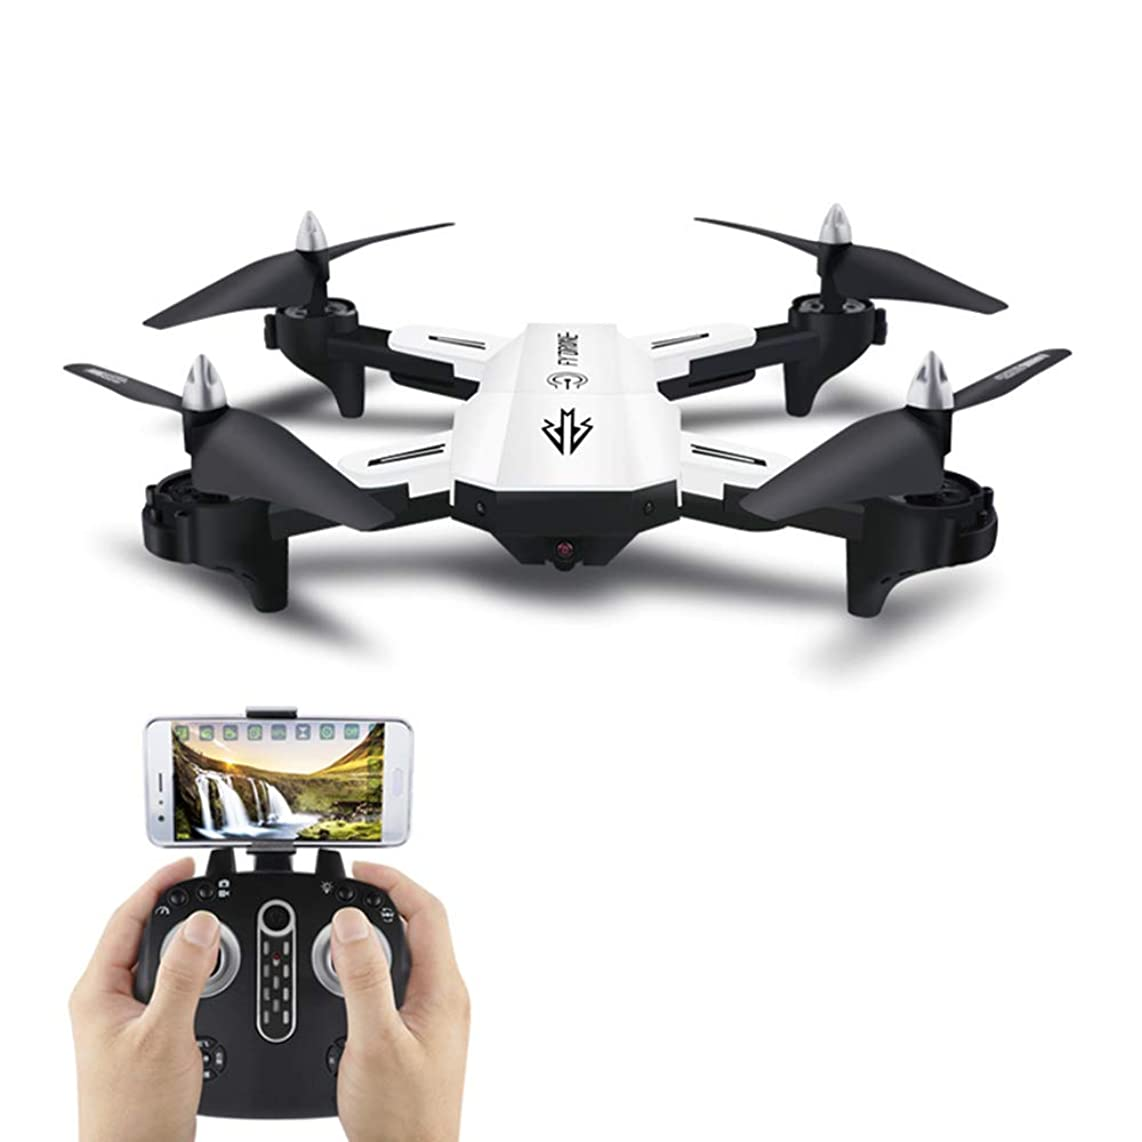 WANGKM Folding Aerial Drone Mini Long Endurance Four-axis Aircraft Real-time Transmission Led Lights Fixed Height Remote Control Aircraft Cross-Border Toy Drone